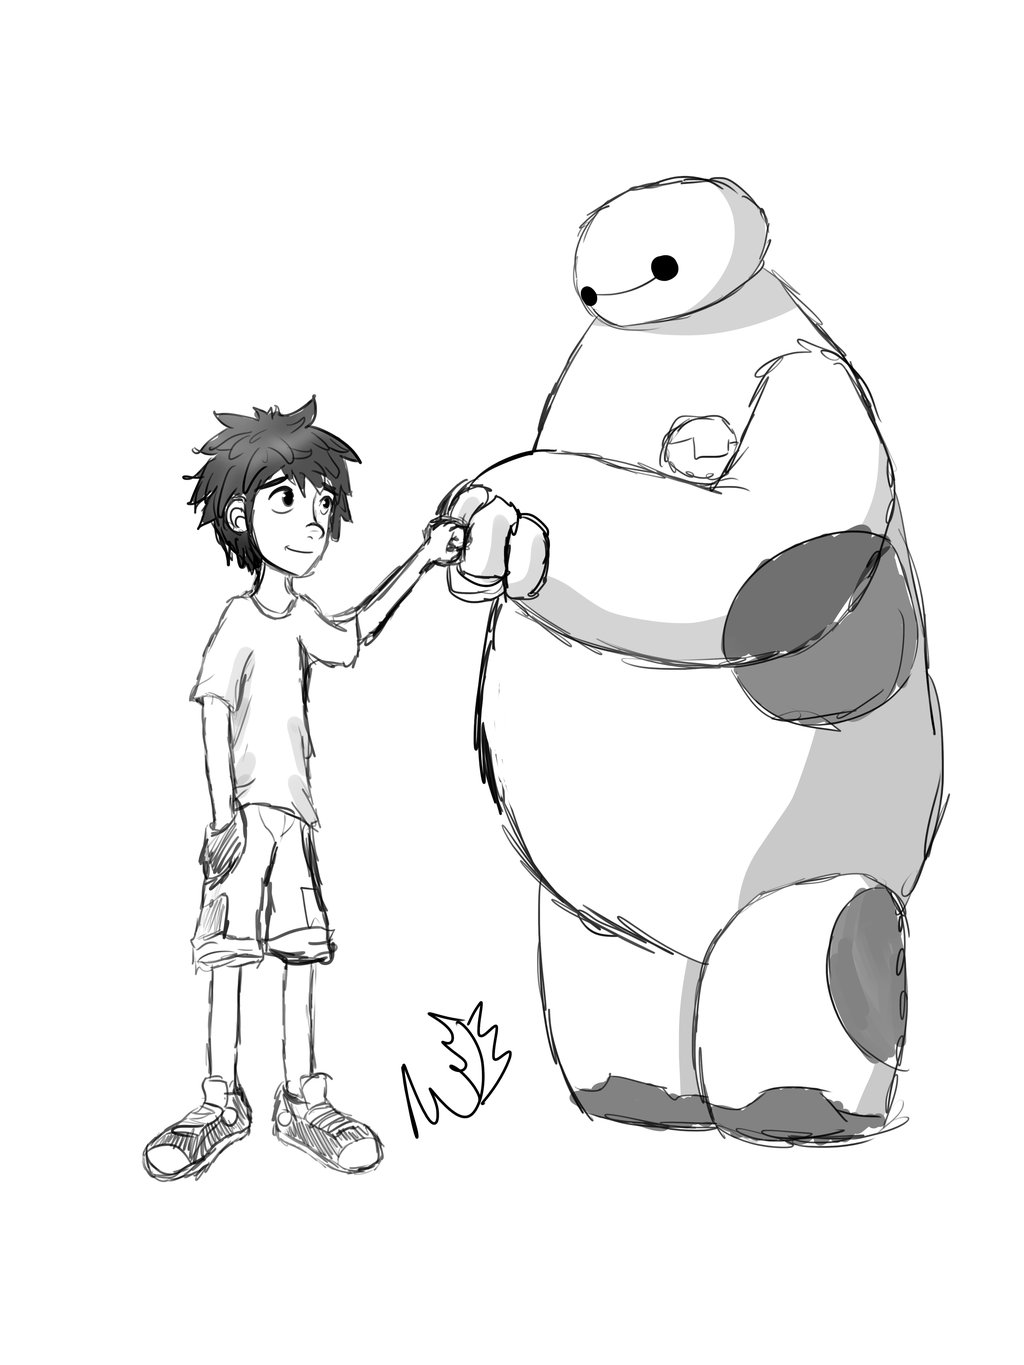 1024x1365 Hiro And Baymax Fistbump~ Digital Sketch~ By Alphafuryofthenight